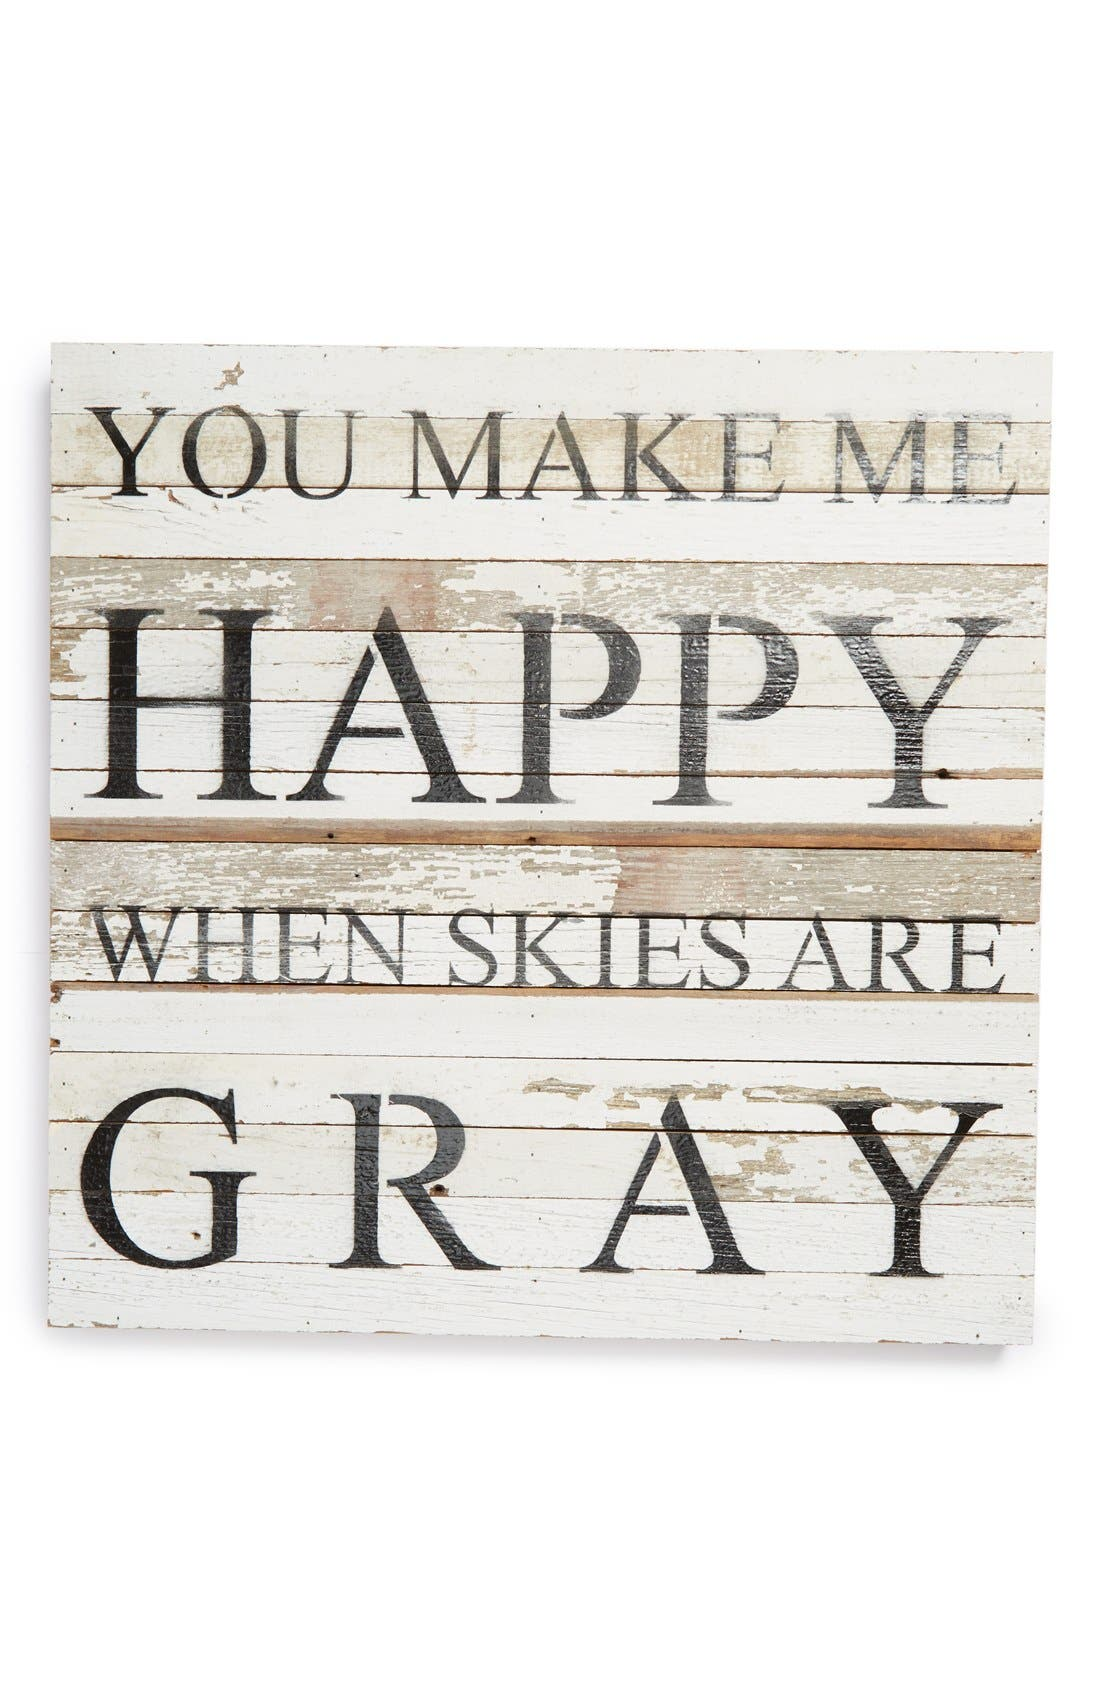 Alternate Image 1 Selected - Second Nature by Hand 'You Make Me Happy When Skies Are Gray' Repurposed Wood Wall Art